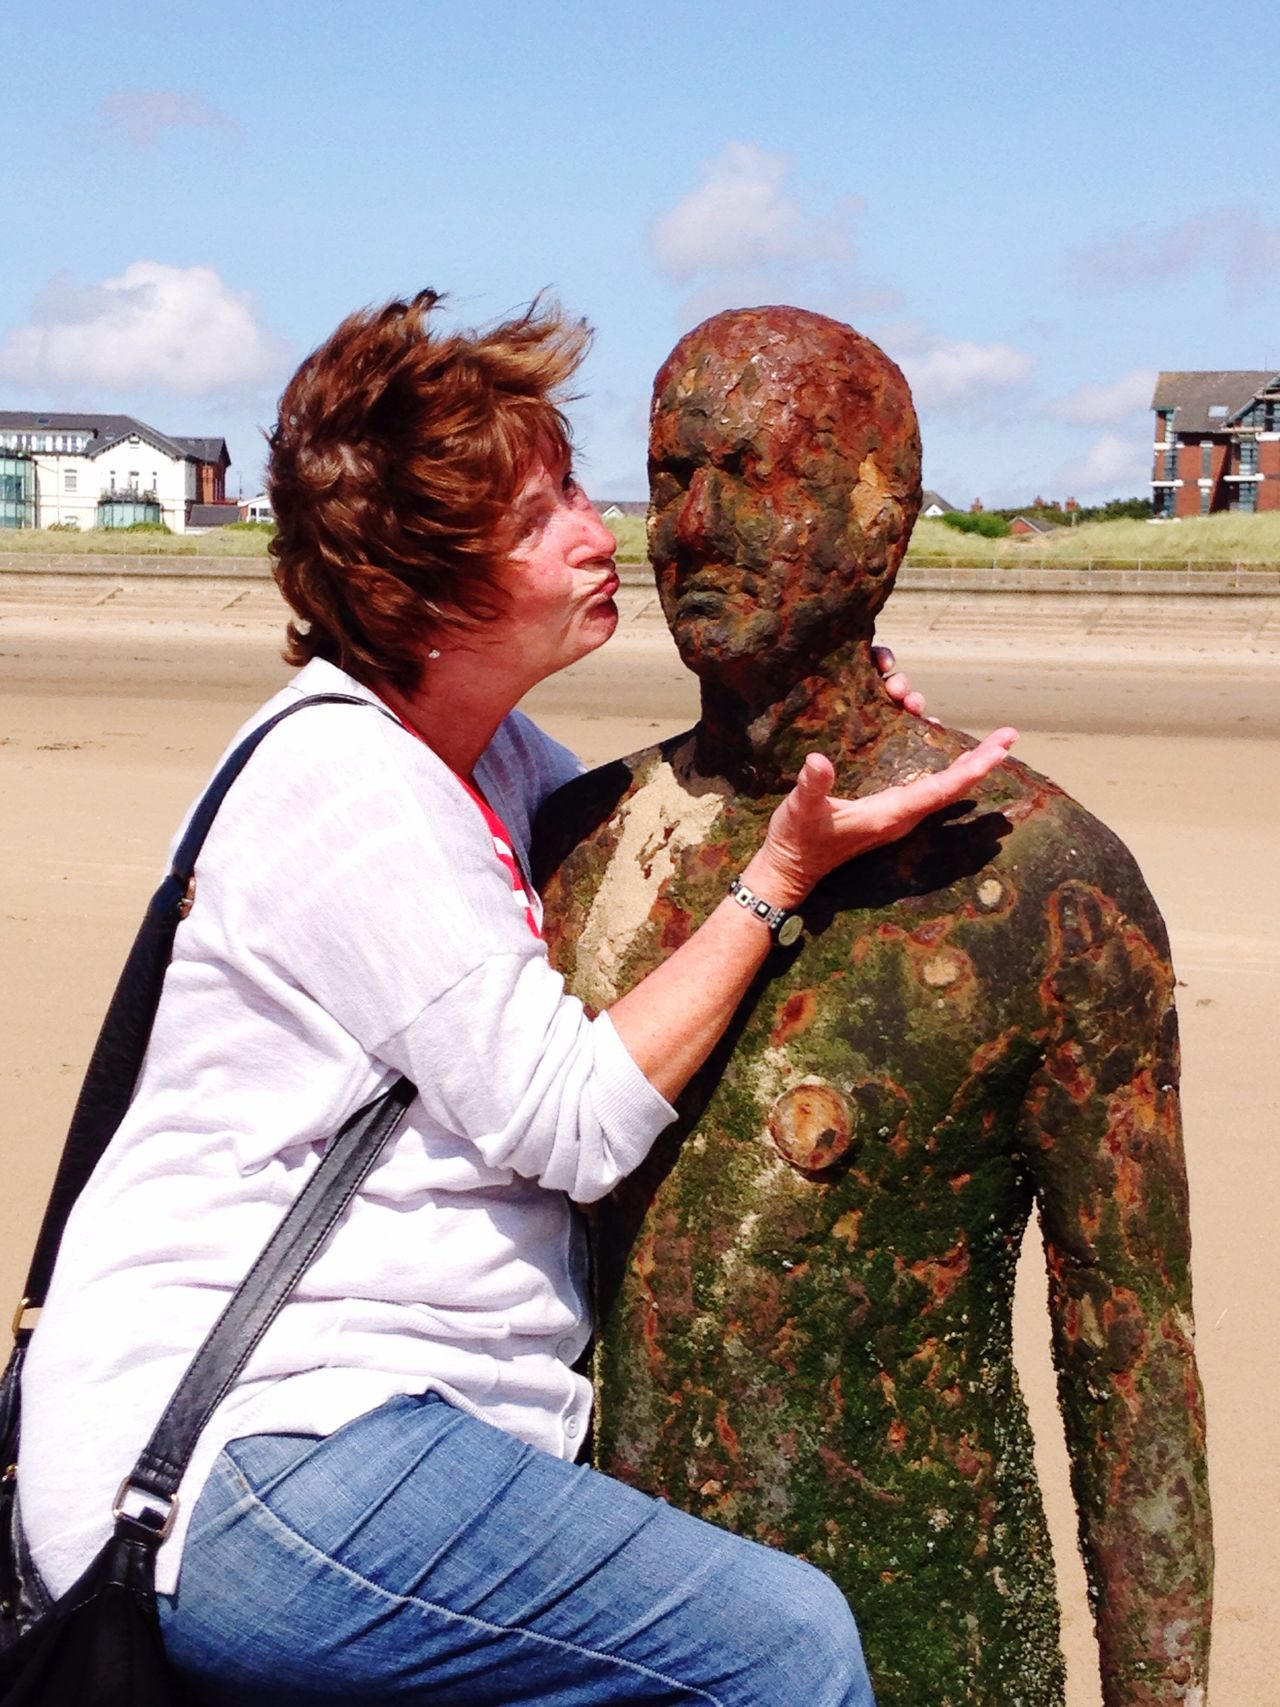 People And Places Crosby Beach Statue Fun England Beach Life Beach Photography Seaside